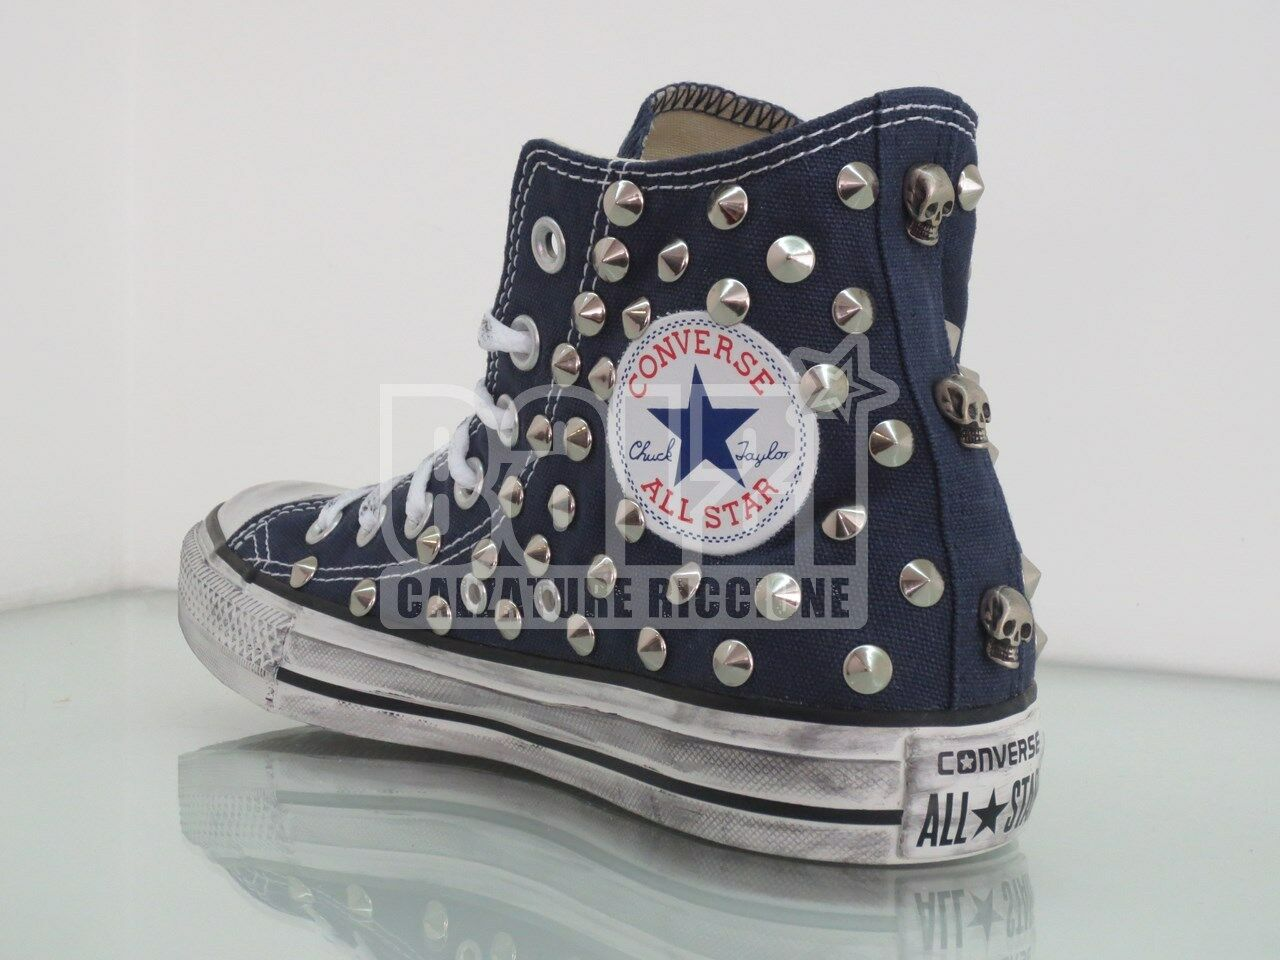 Converse All Star Hi Studded Skulls INV shoes Woman Man Navy craft